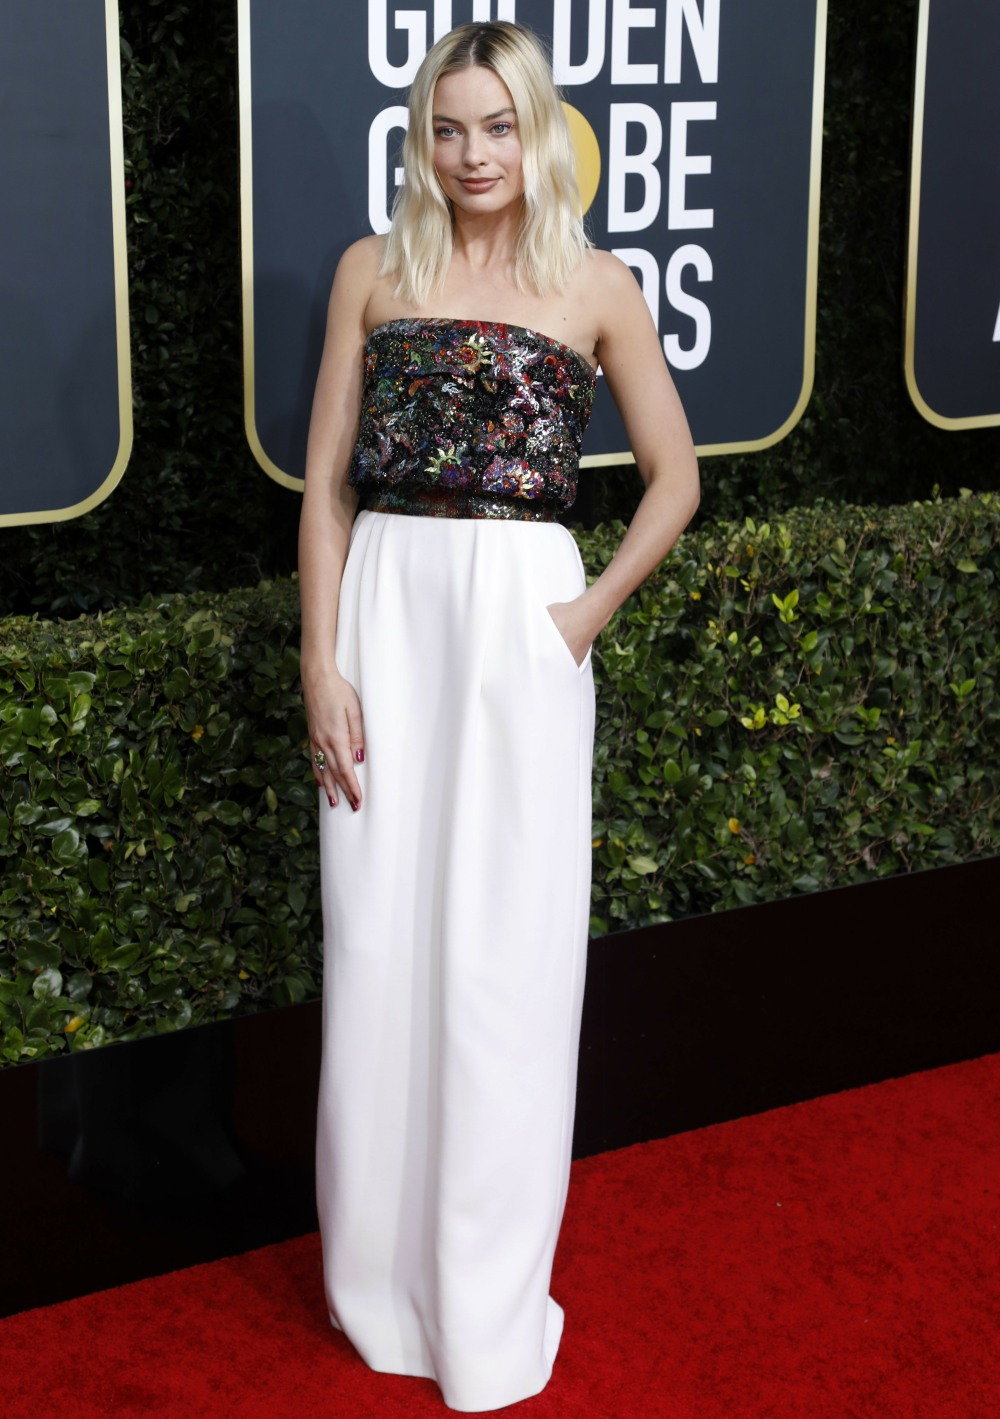 Margot Robbie attending the 77th Annual Golden Globe Awards at The Beverly Hilton Hotel on January 5, 2020 in Beverly Hills, California. | usage worldwide